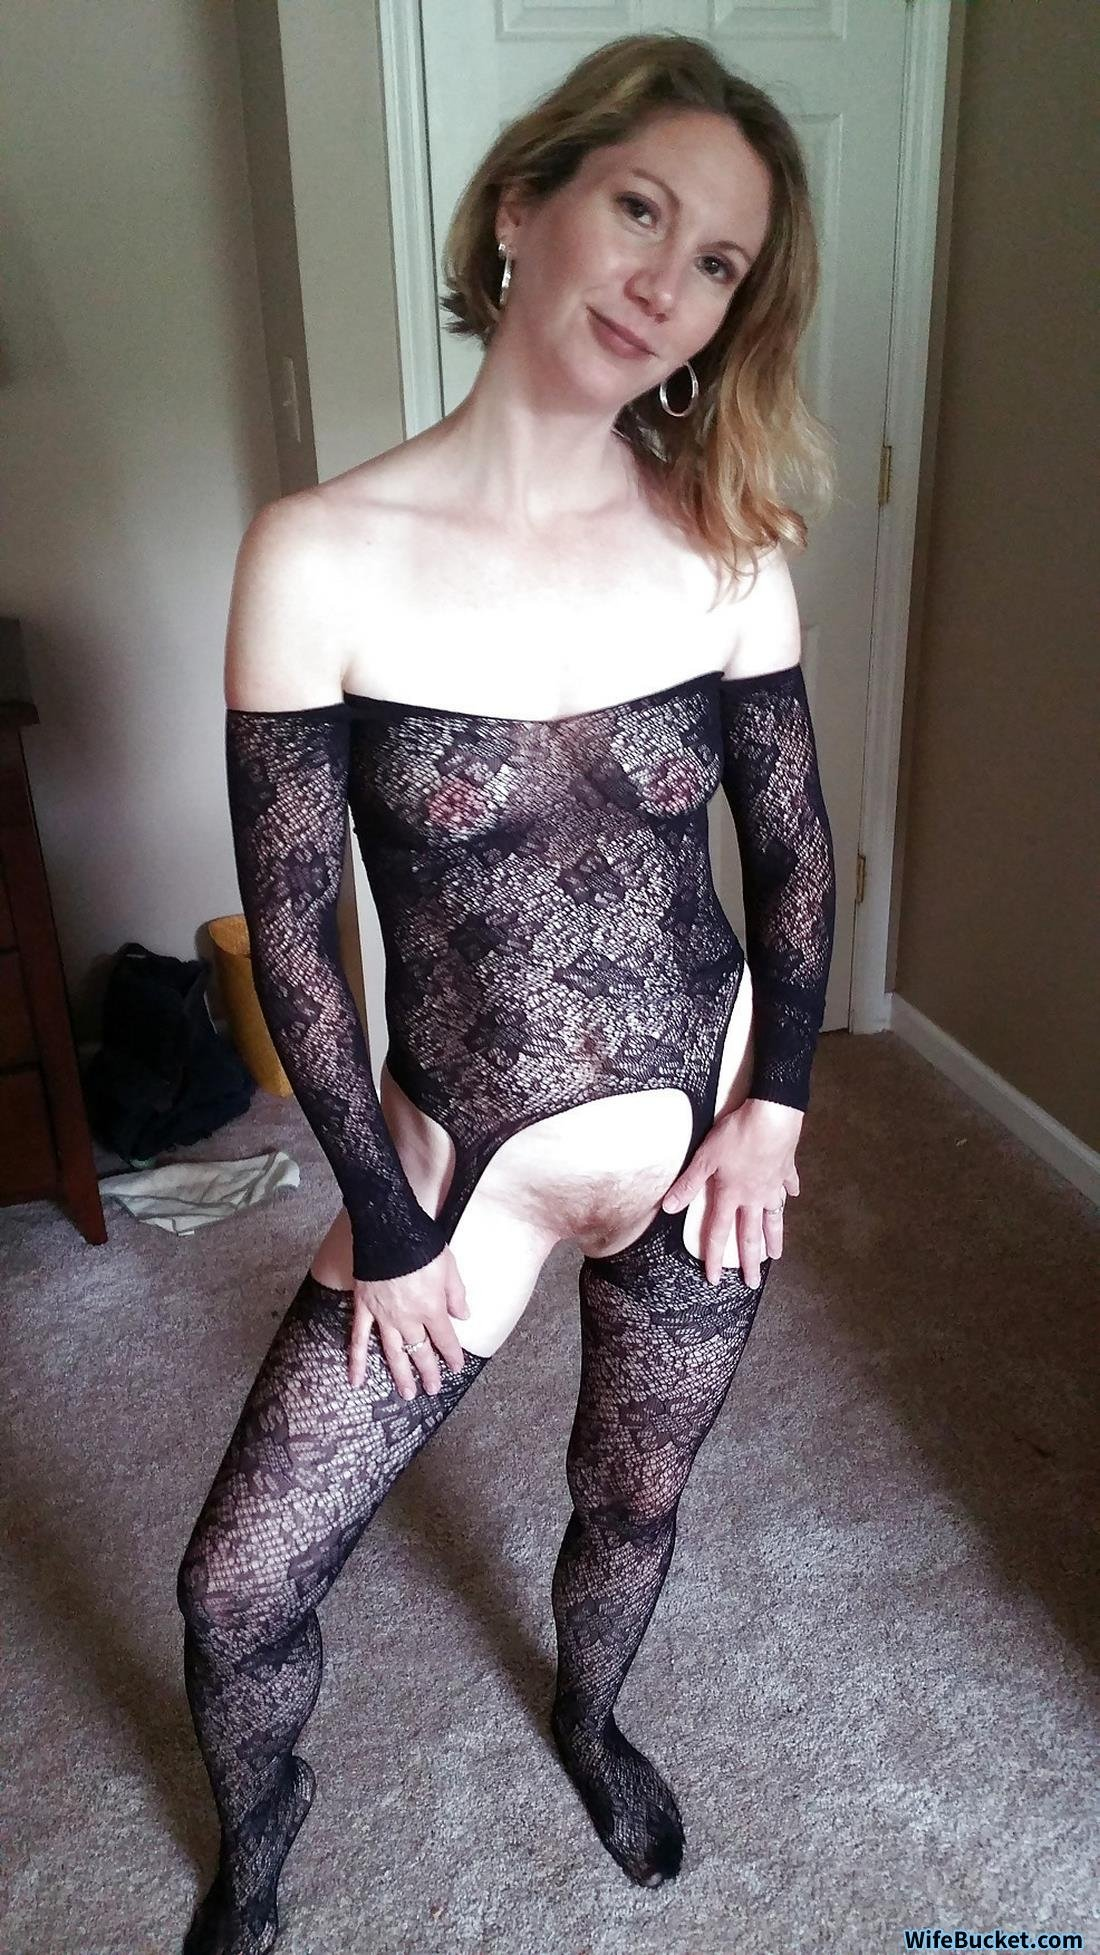 Nikoshura    reccomended Check out my hot new fishnets and garter belt JOI